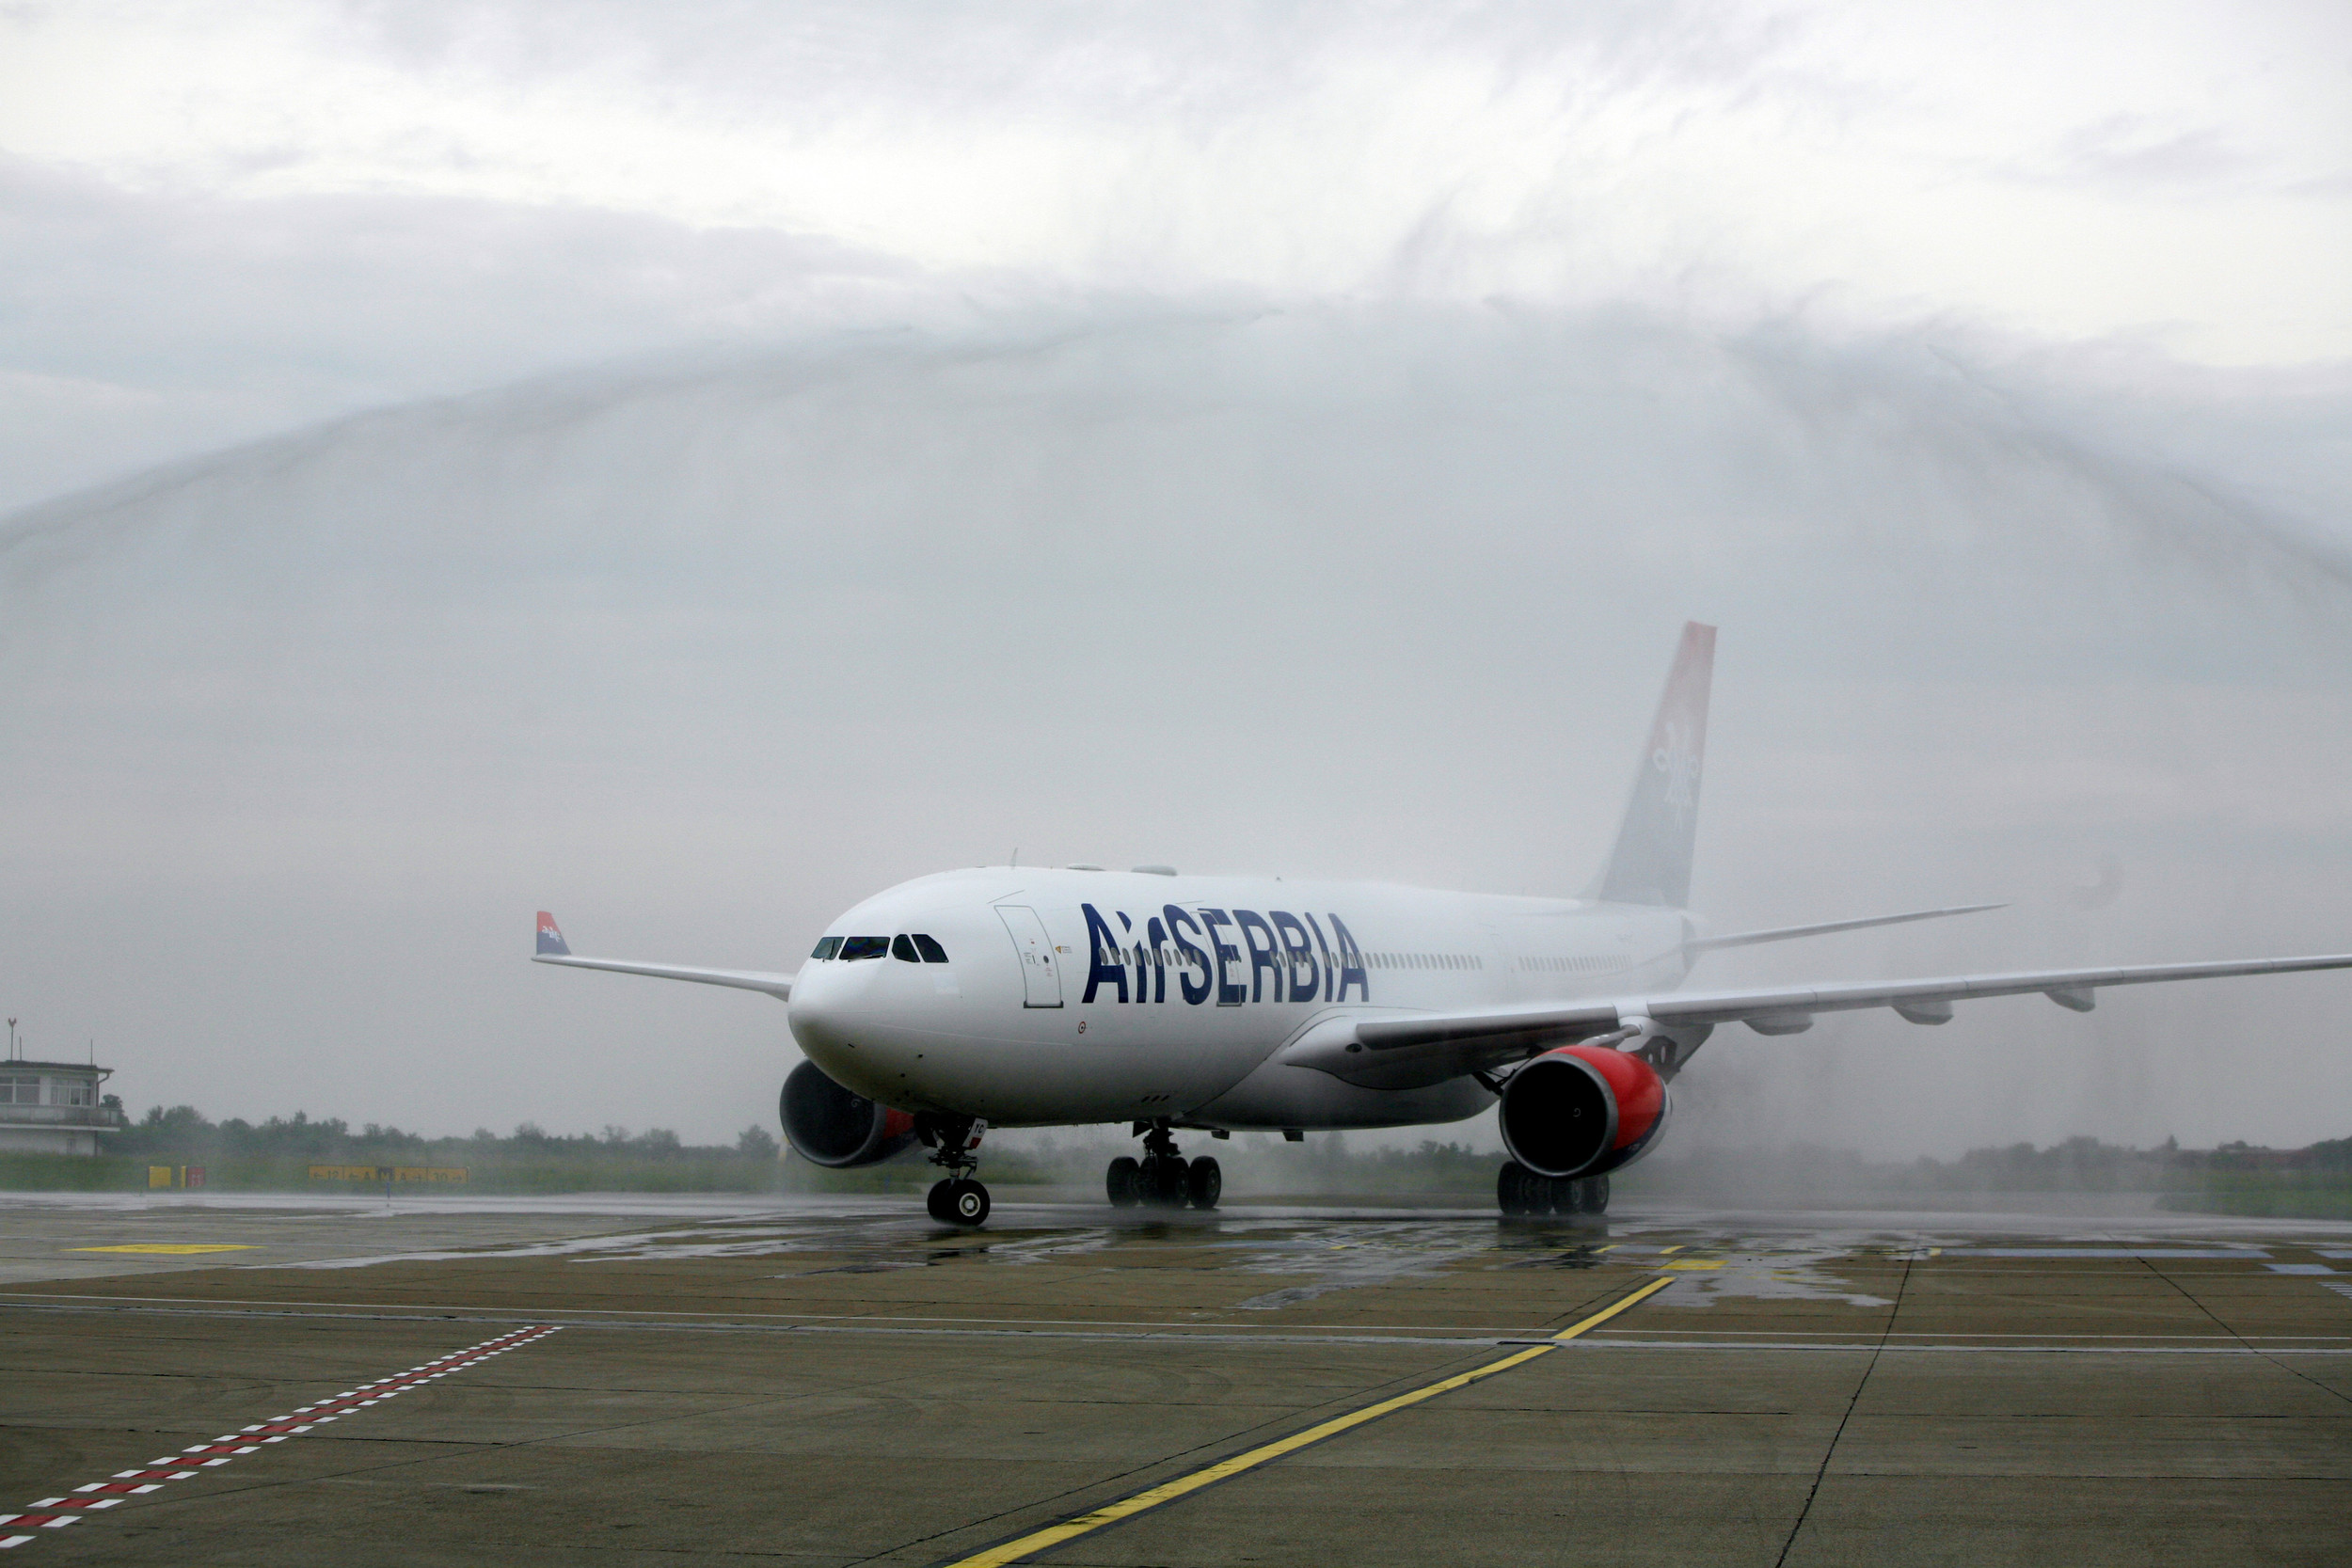 The first Airbus A330 aircraft to enter Air Serbia's fleet is greeted by a traditional water cannon salute upon arrival at Nikola Tesla Airport. Picture: Air Serbia